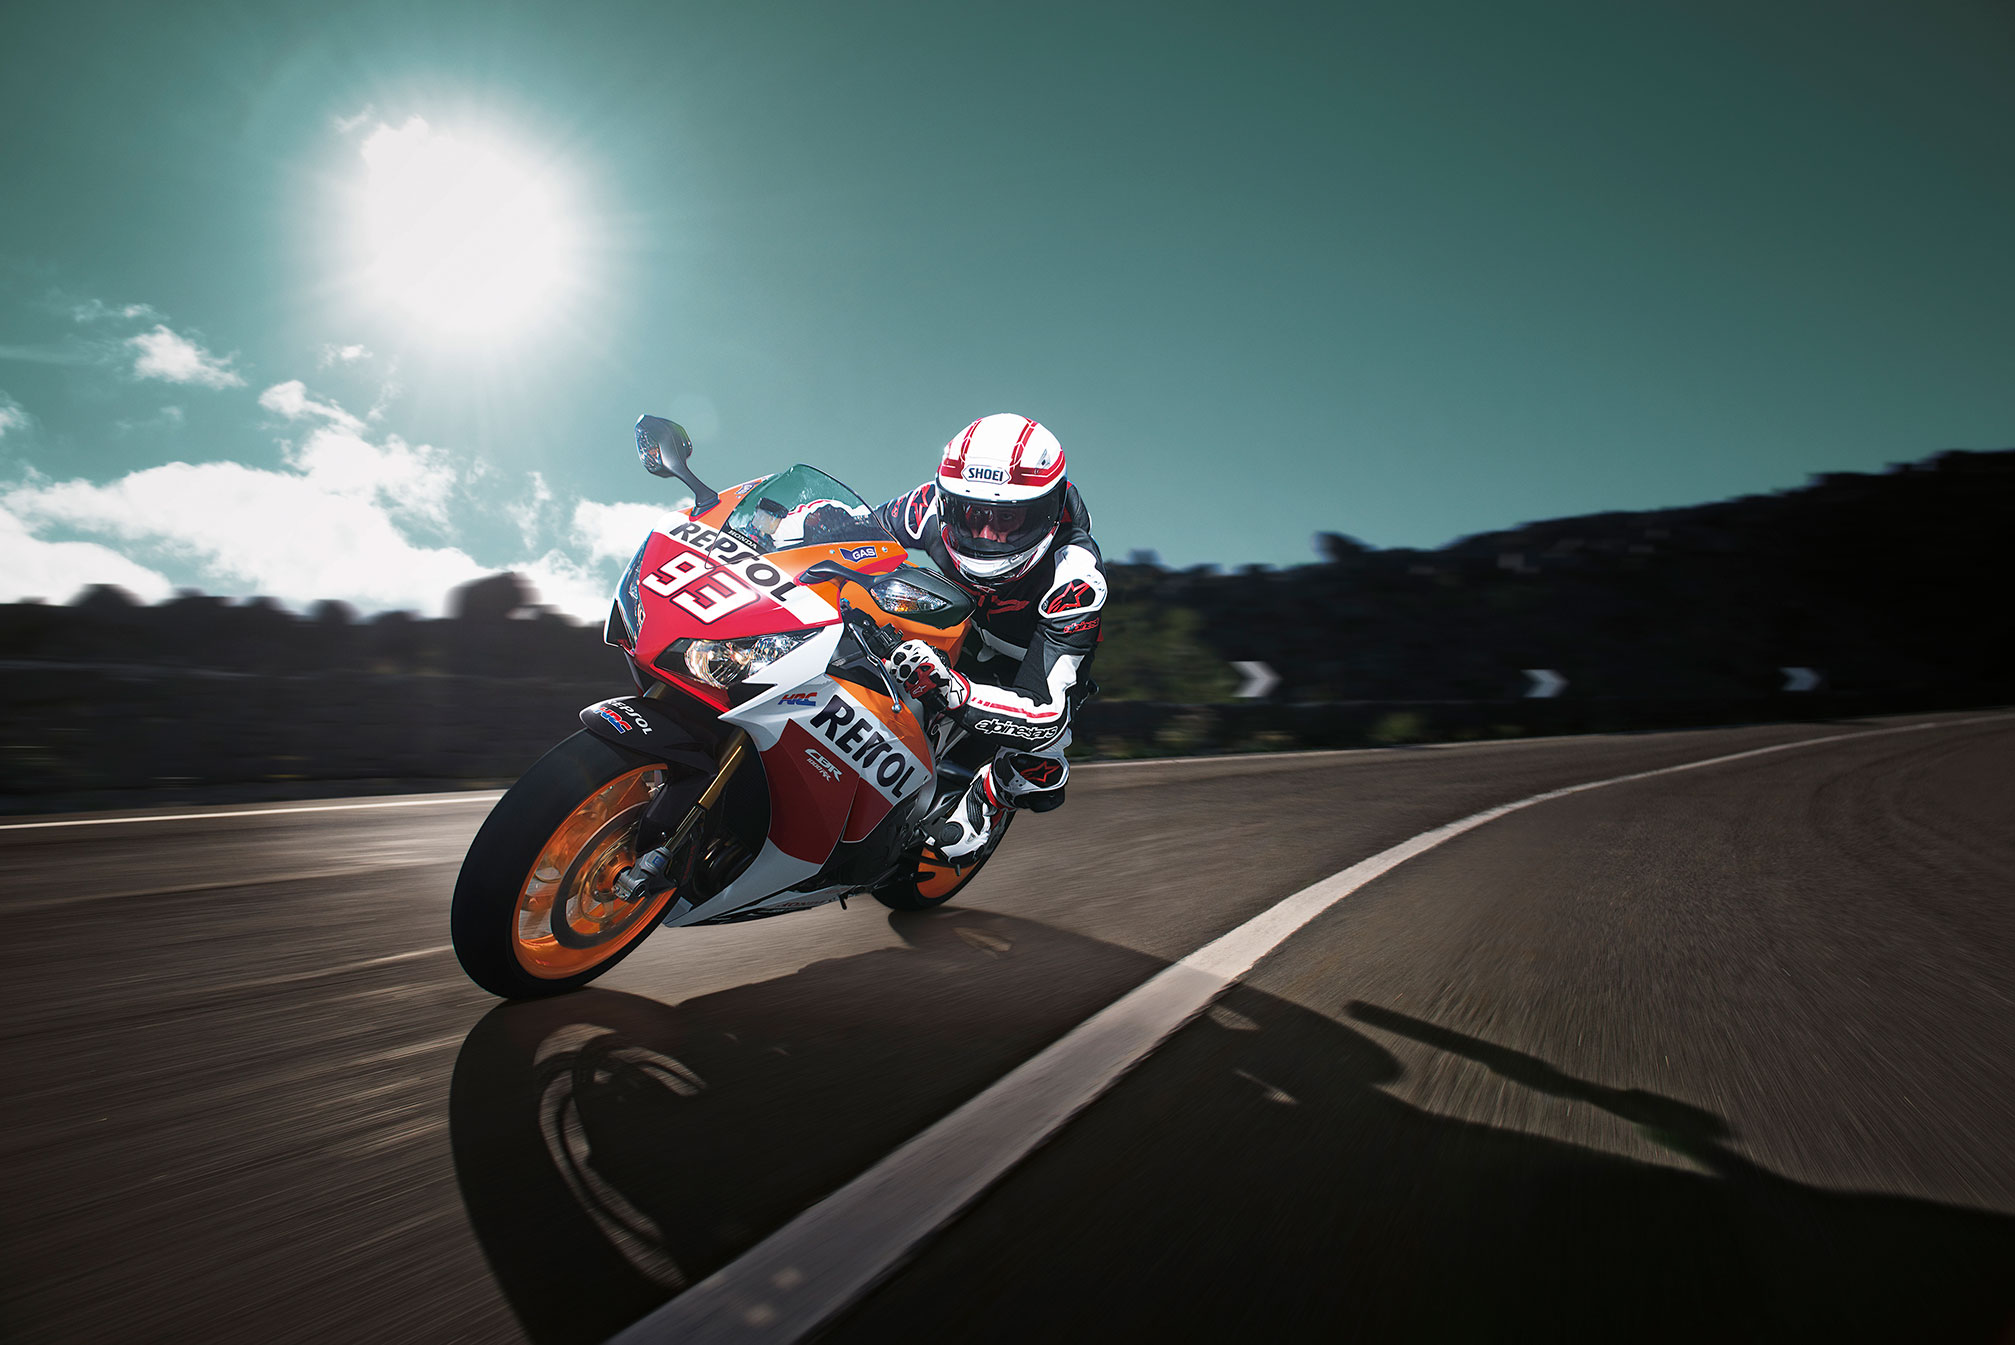 Honda Cbr Rr Sp Repsol Edition on Honda Cbr Wallpaper